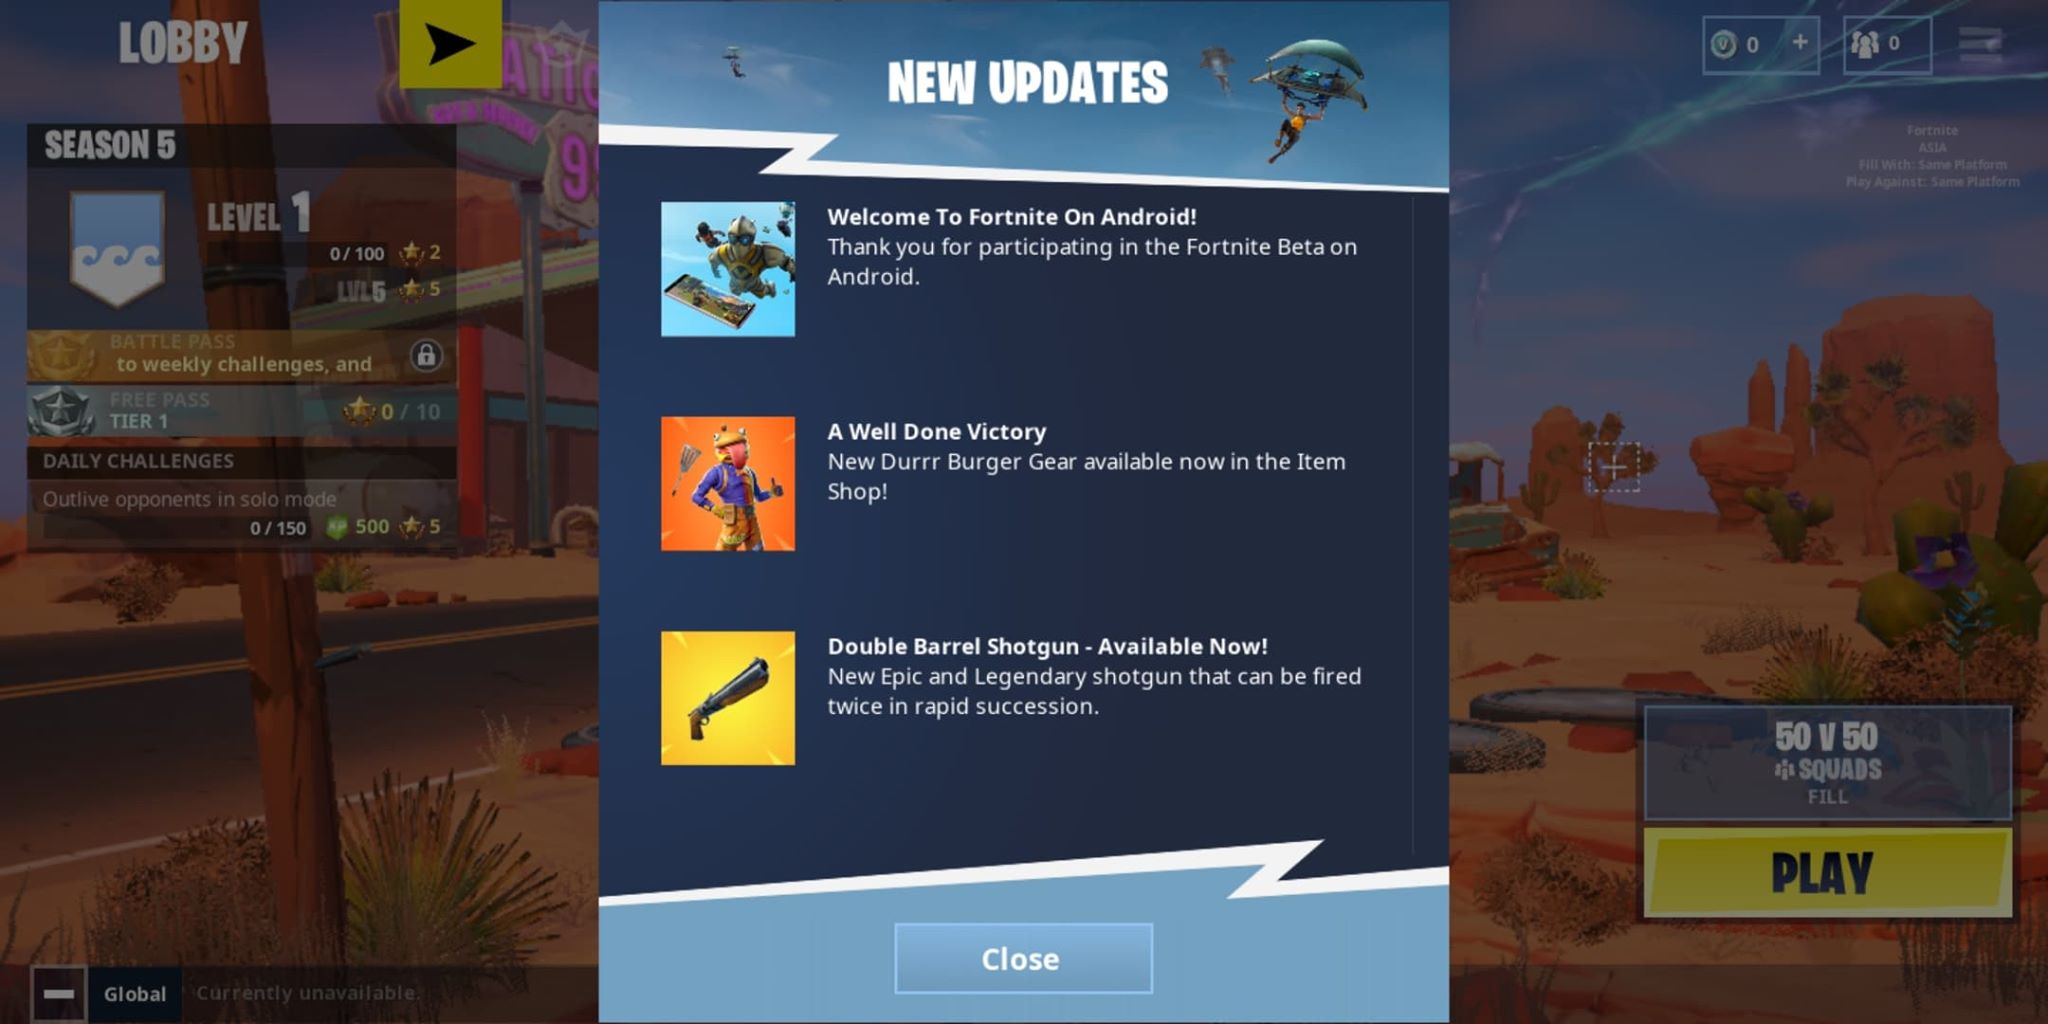 download fortnite battle royale mod apk for all android devices - fortnite android beta apk for unsupported devices